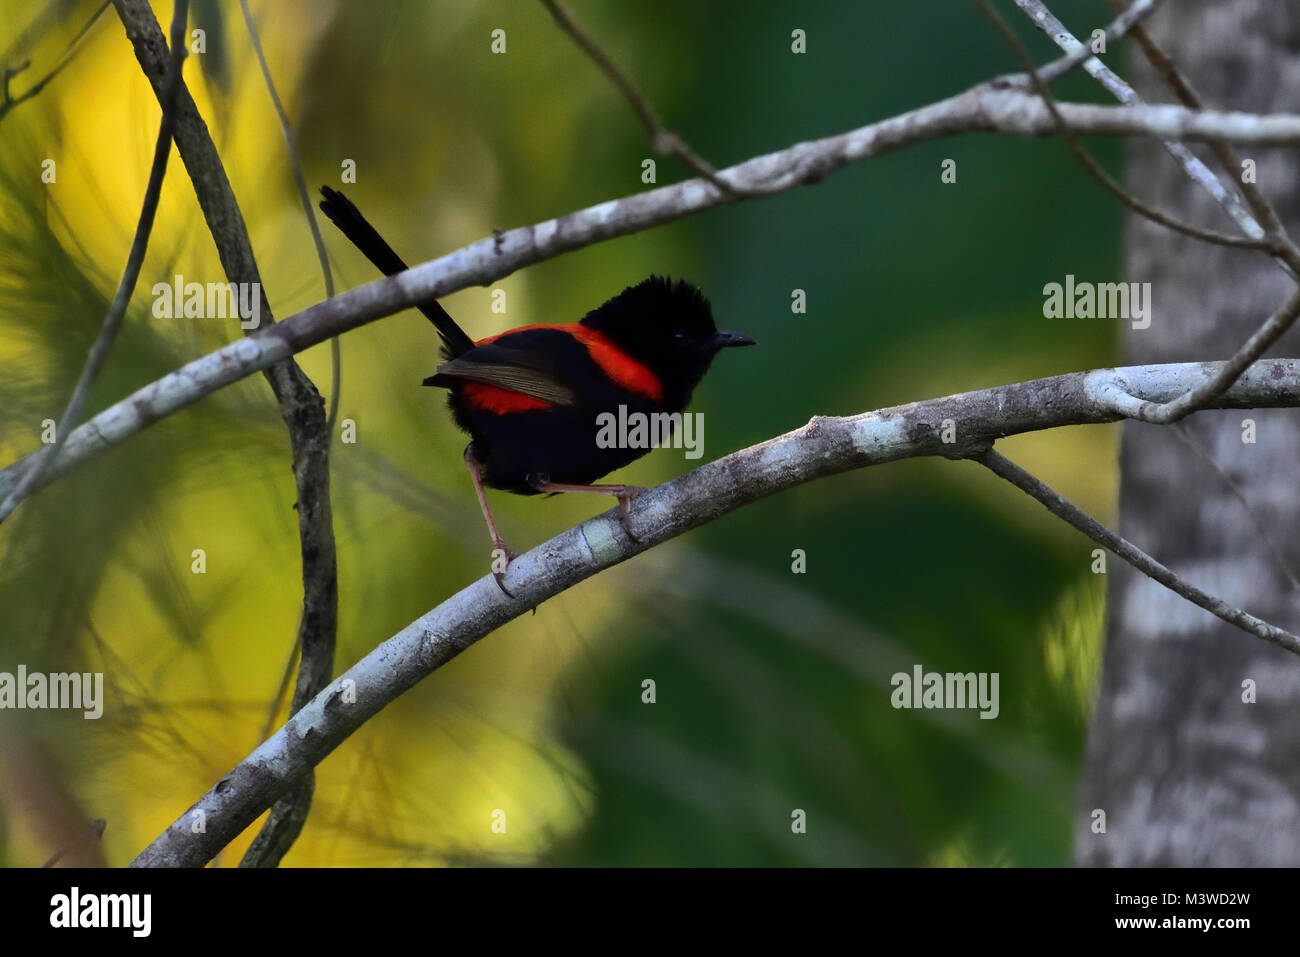 An Australian Male Red-backed Fairy-wren resting on a Tree branch - Stock Image